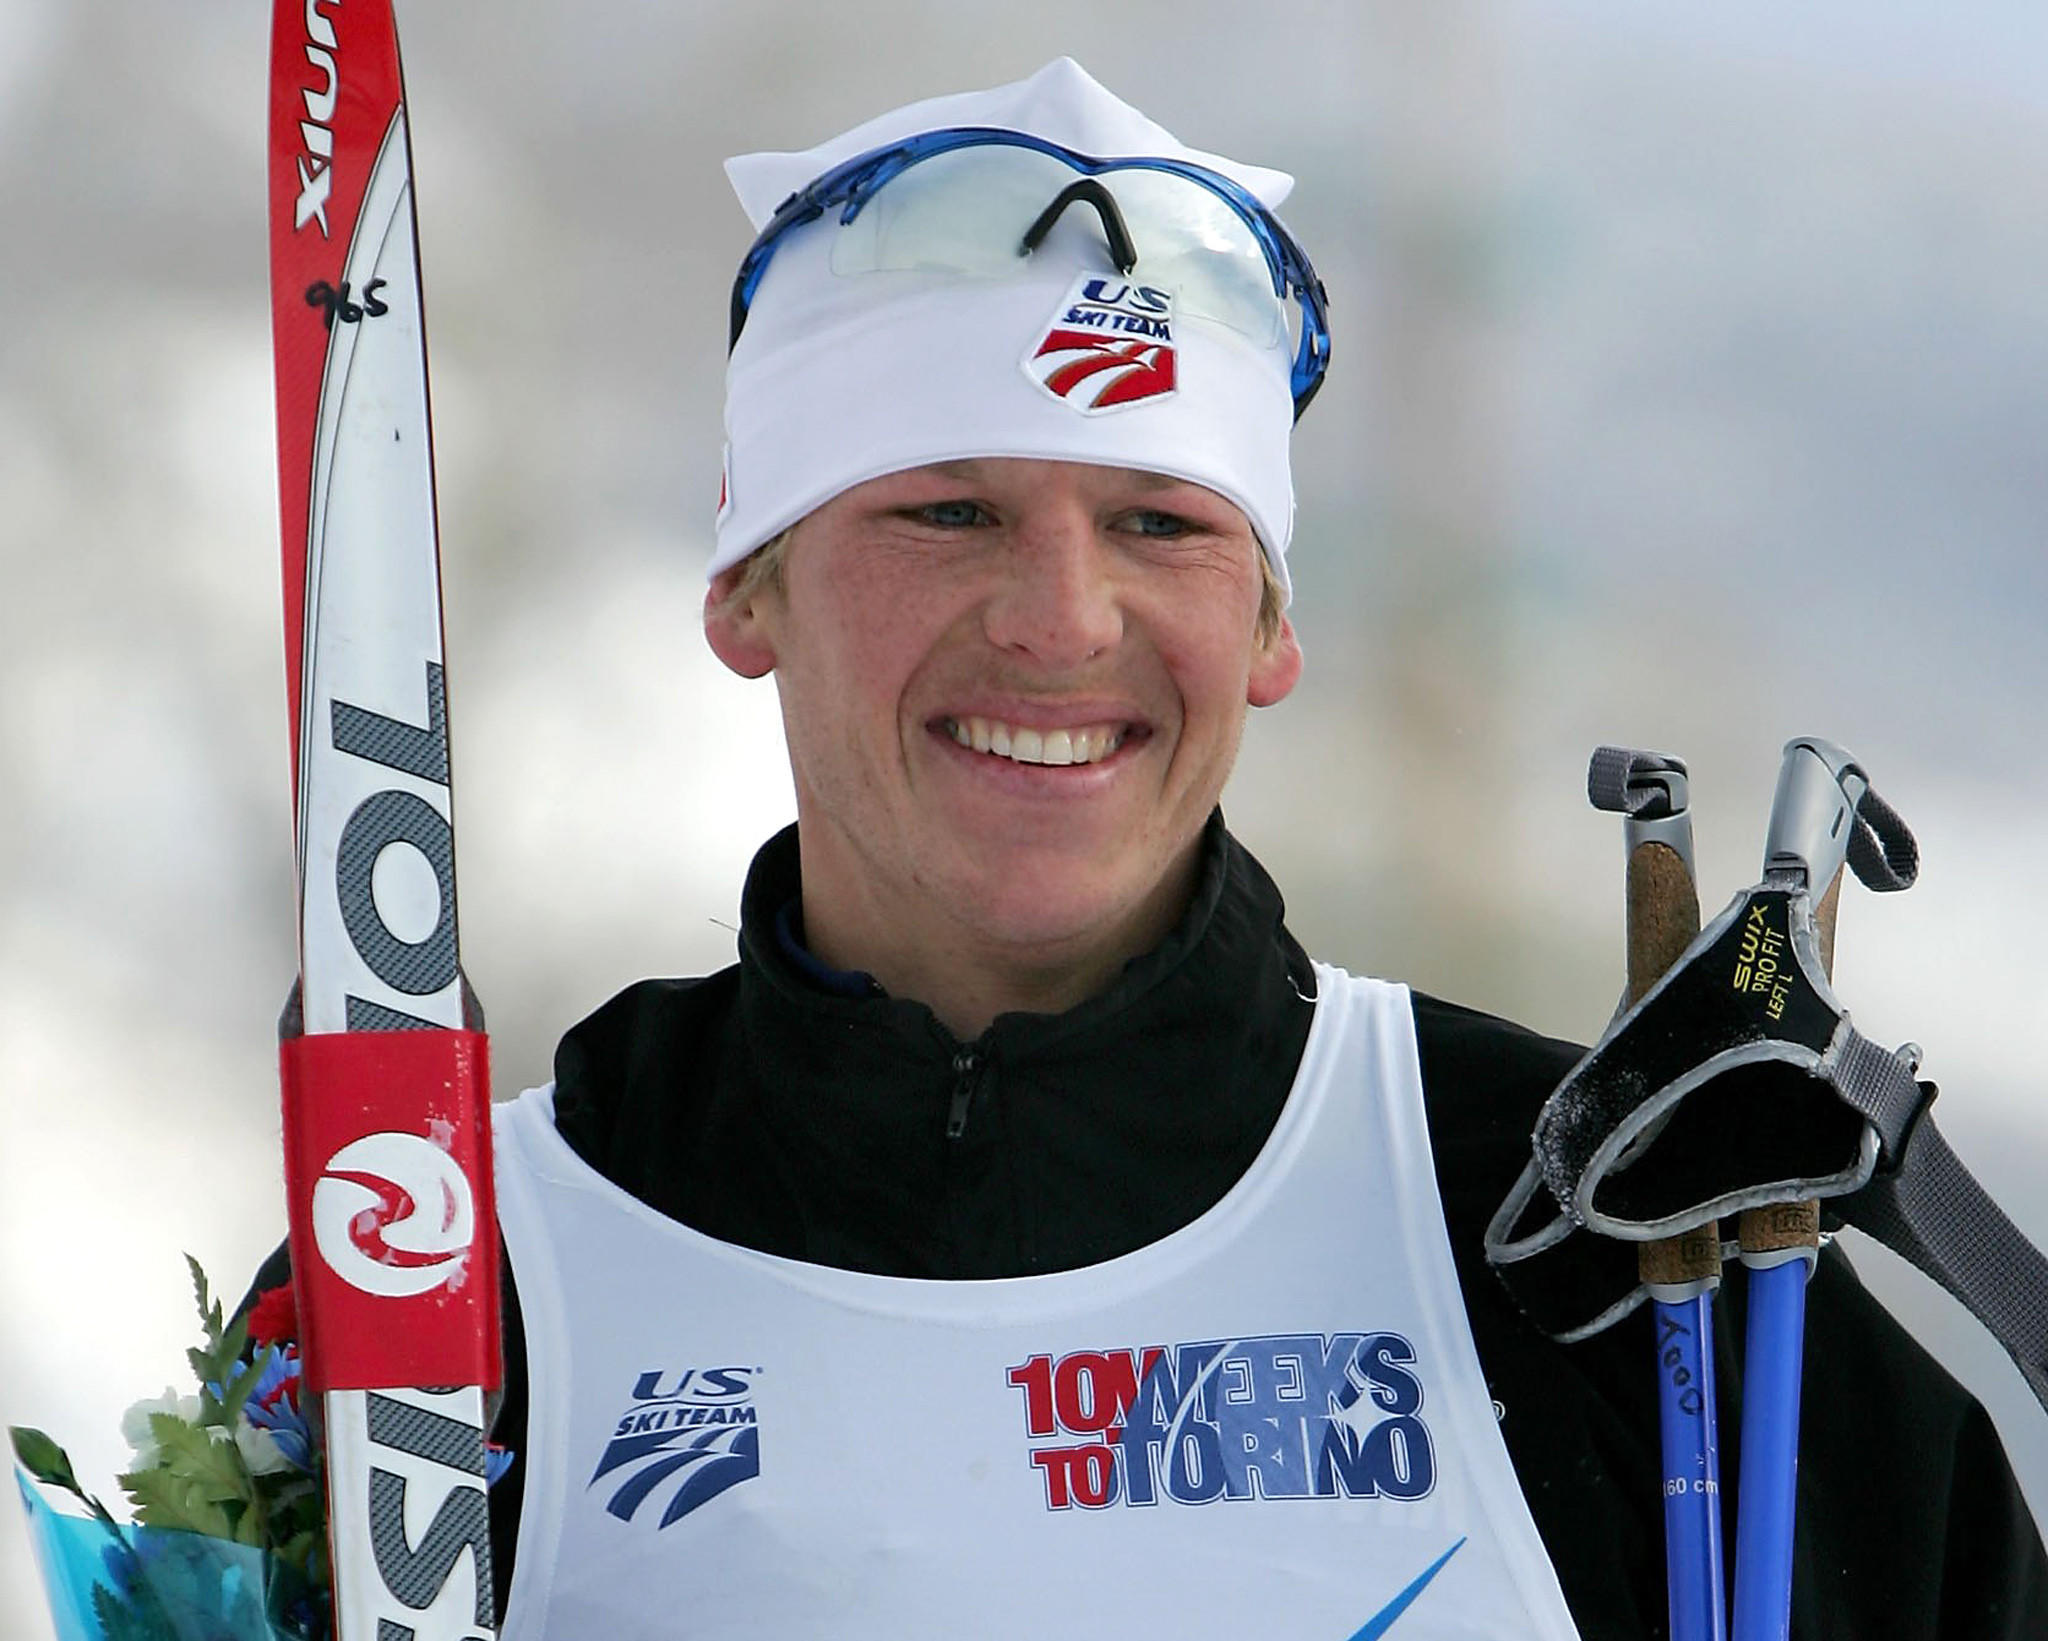 Todd Lodwick of the US takes the podium after winning the gold medal in the 7.5 km cross country portion of the Nordic Combined Championships at Howelsen Hill 21 January 2006 at Howelsen Hill in Steamboat Springs, Colo.